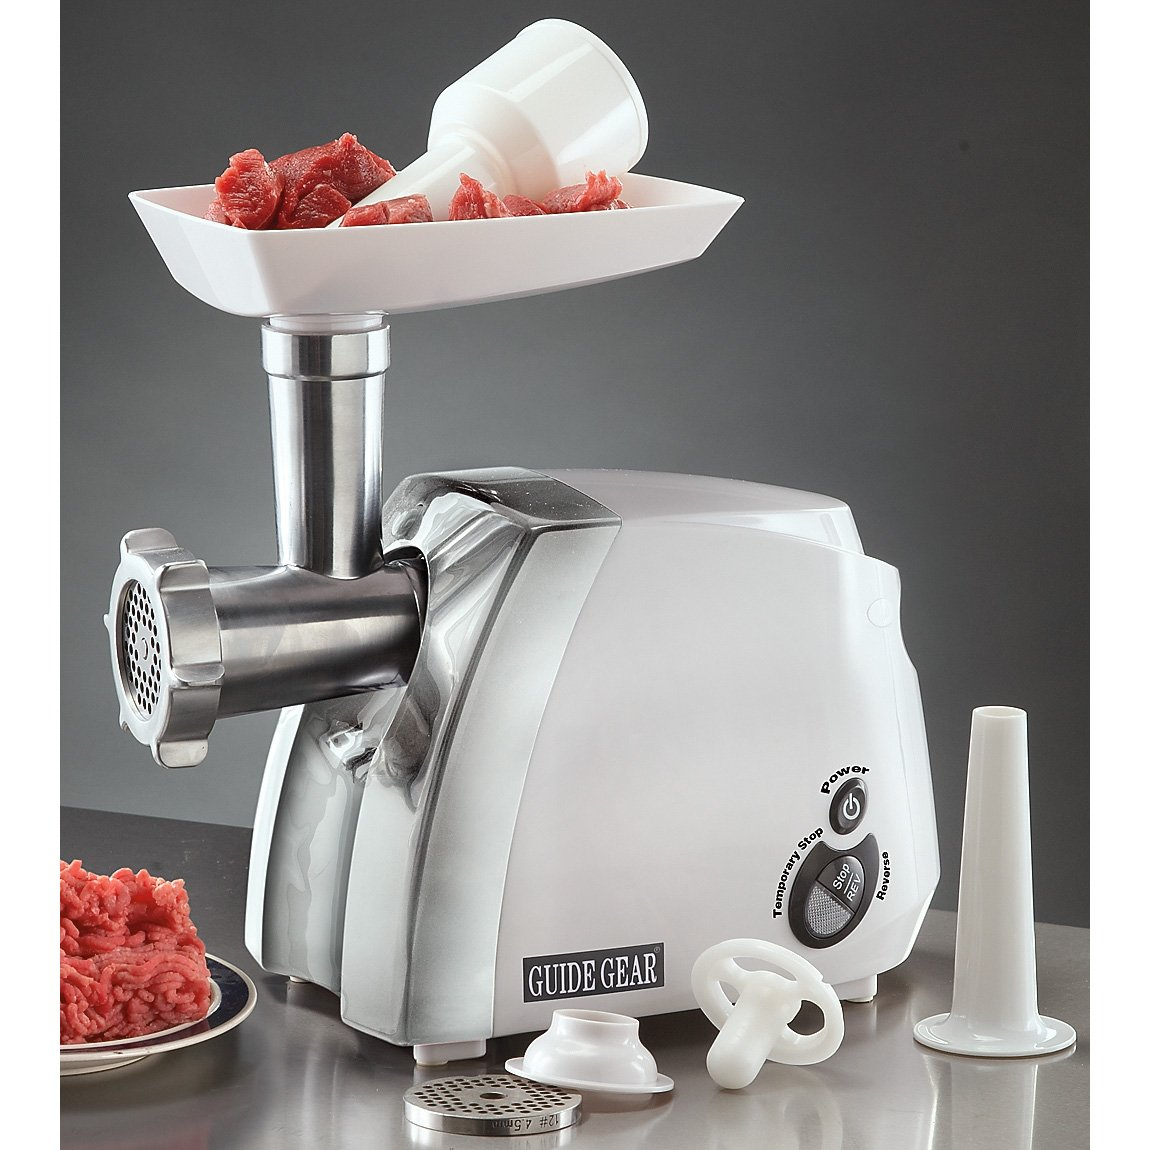 Guide Gear 650W Electric Meat Grinder